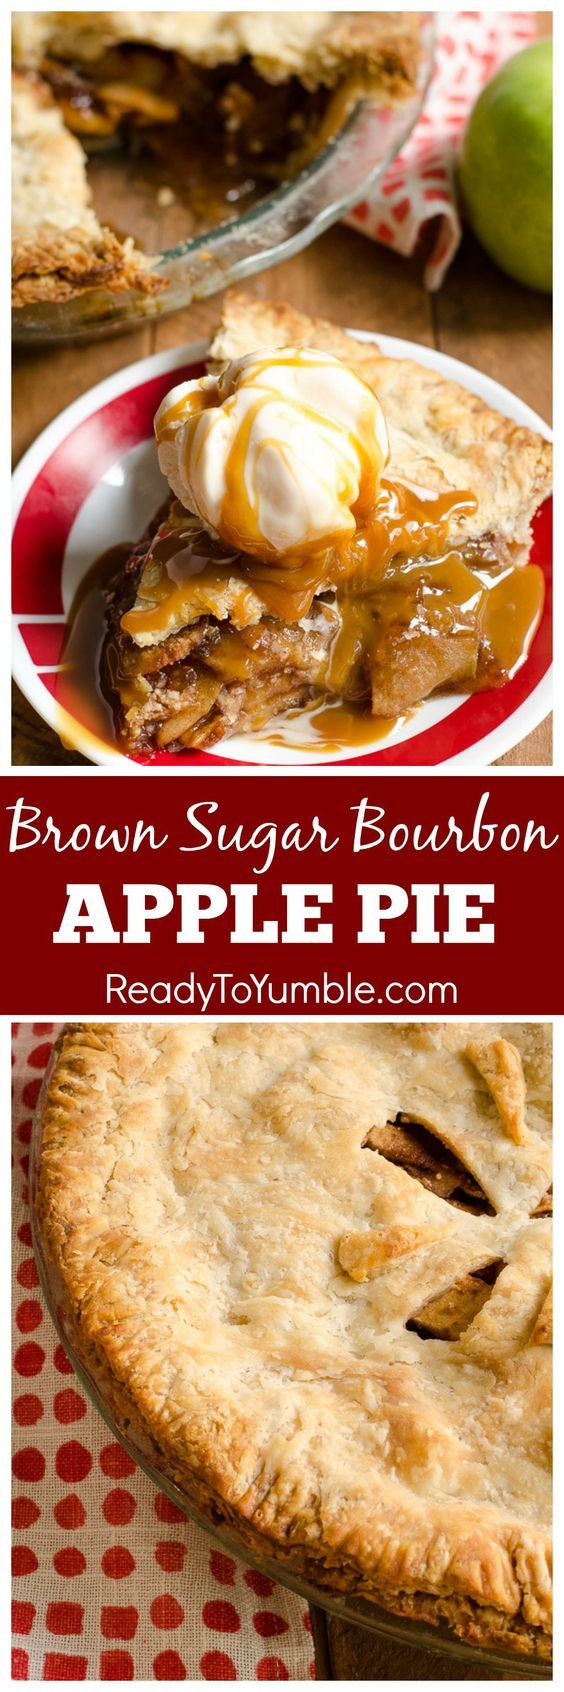 Brown Sugar Bourbon Apple Pie takes your favorite fall flavors and combines them in one juicy dessert!